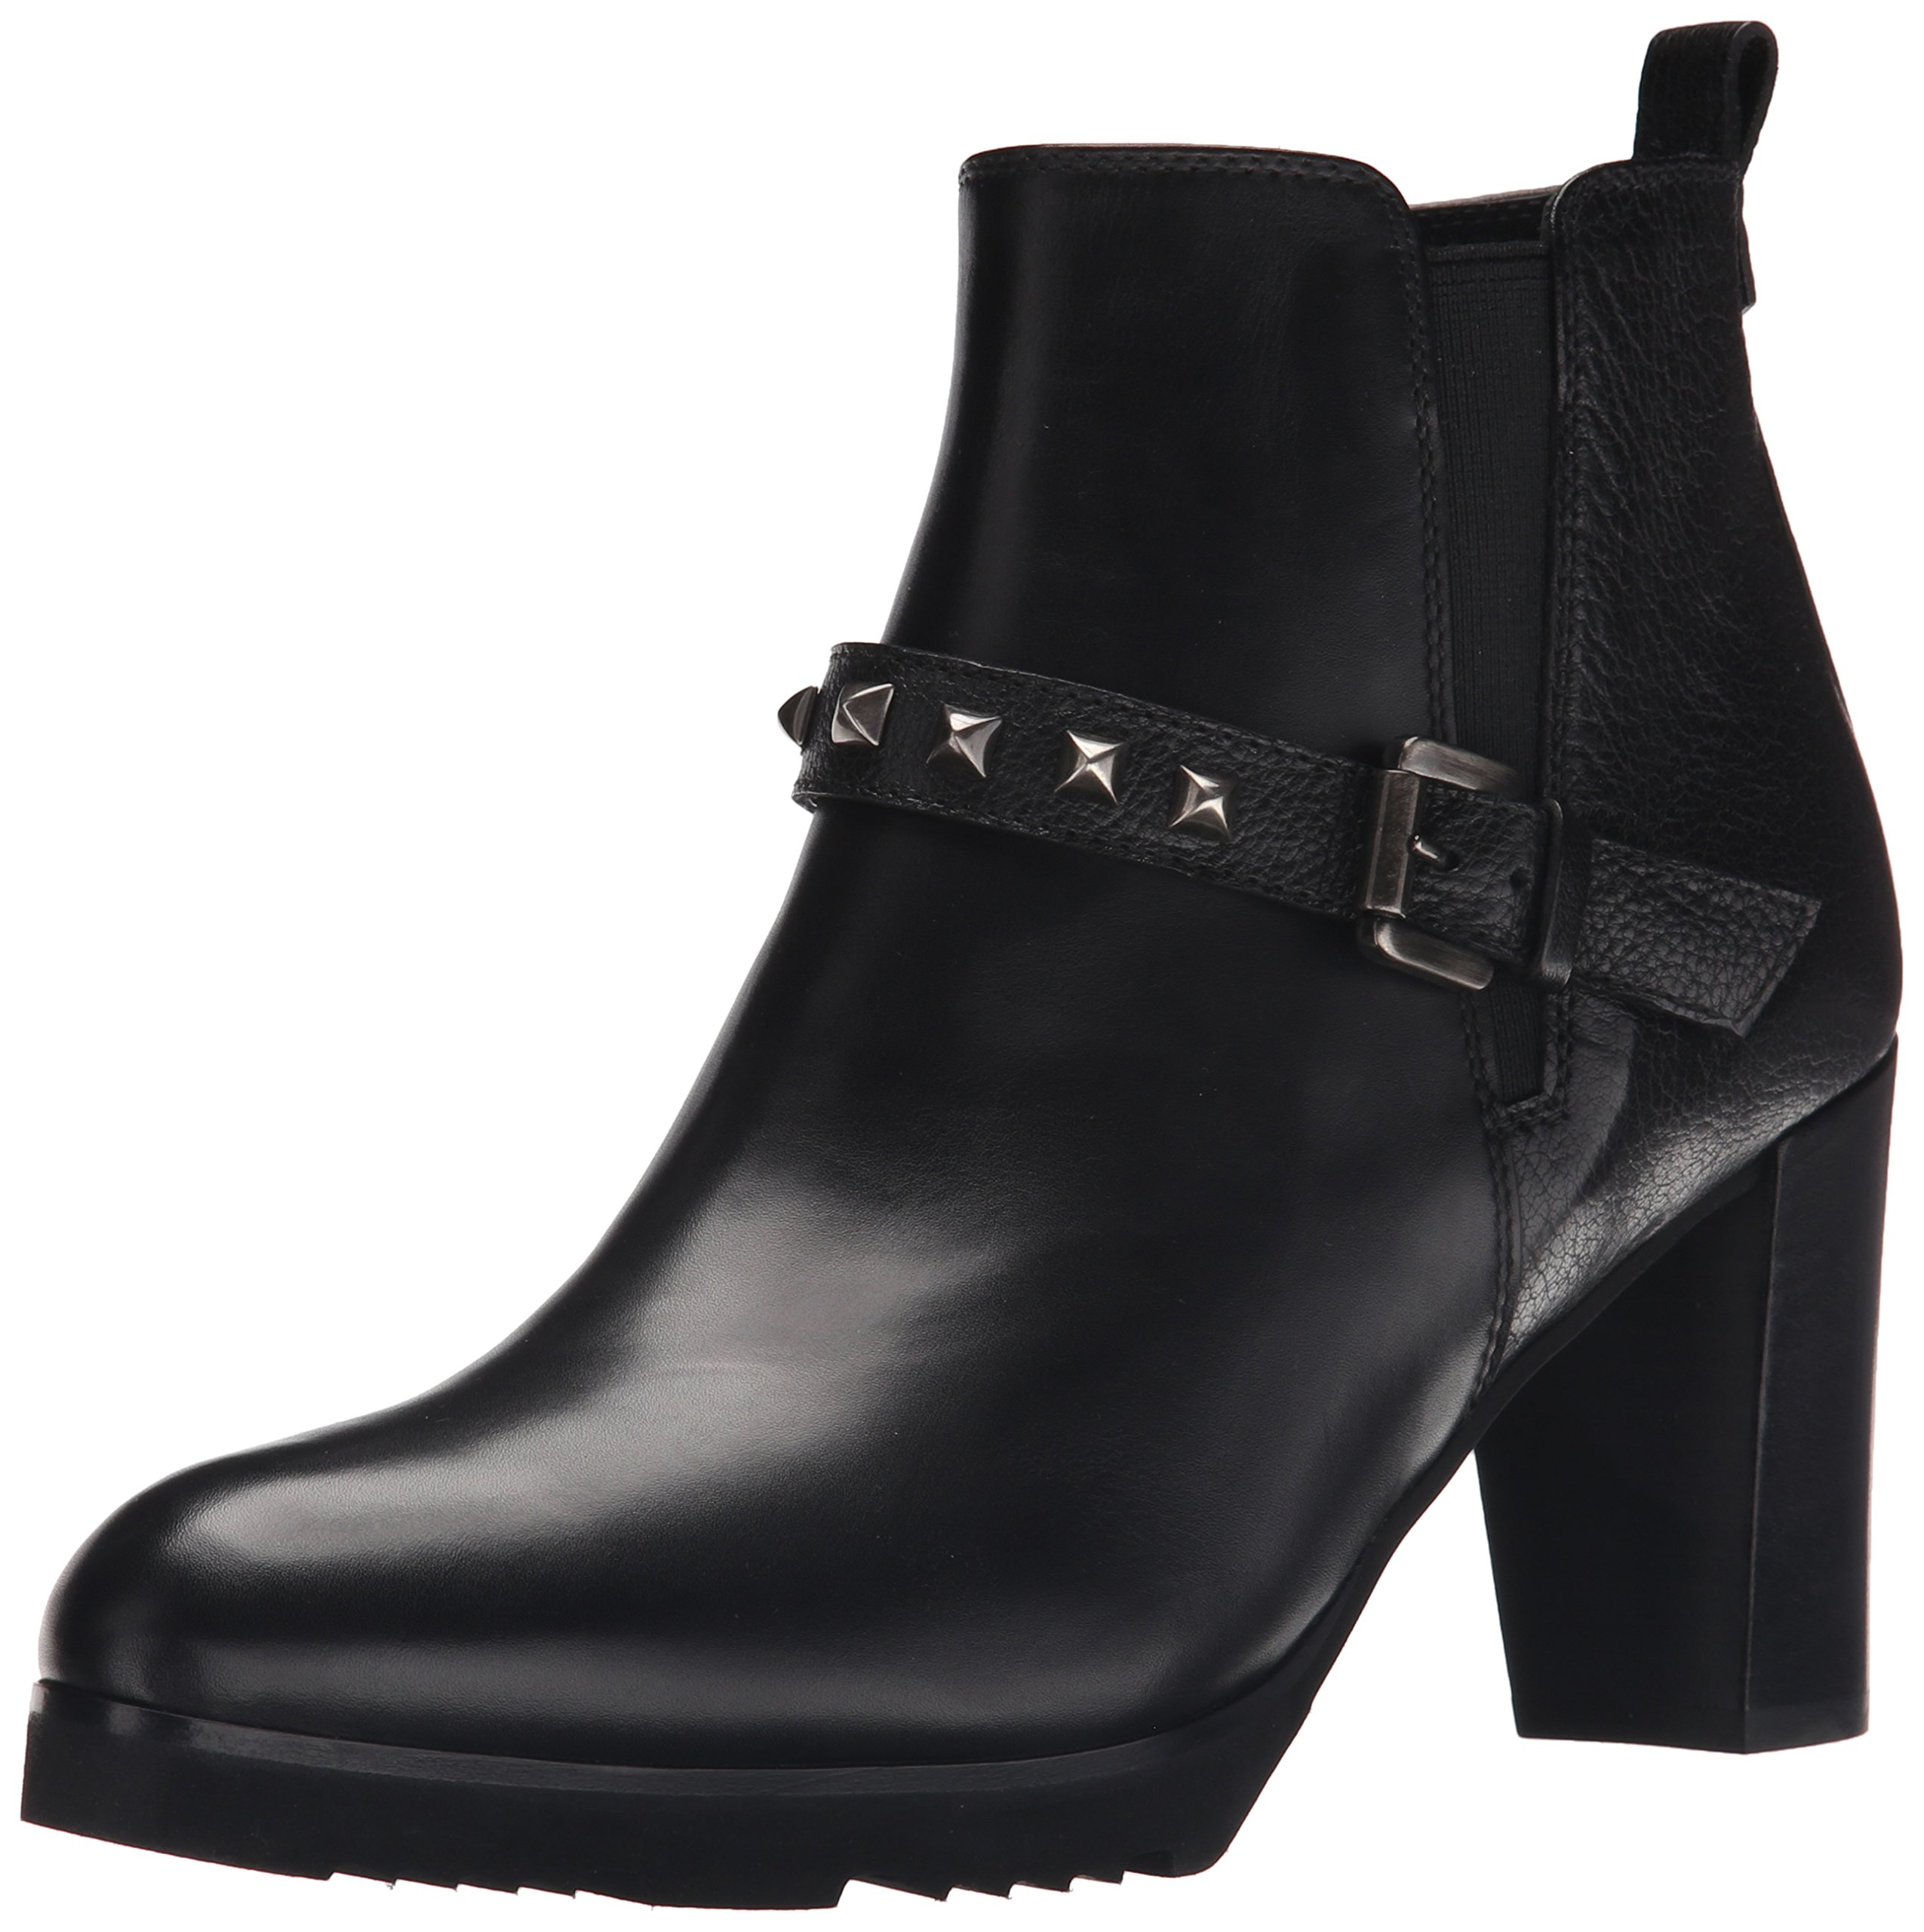 Anyi Lu Women's Zayra Chelsea Boot, Black Calf/Tumbled, 37.5 EU/7-7.5 B US